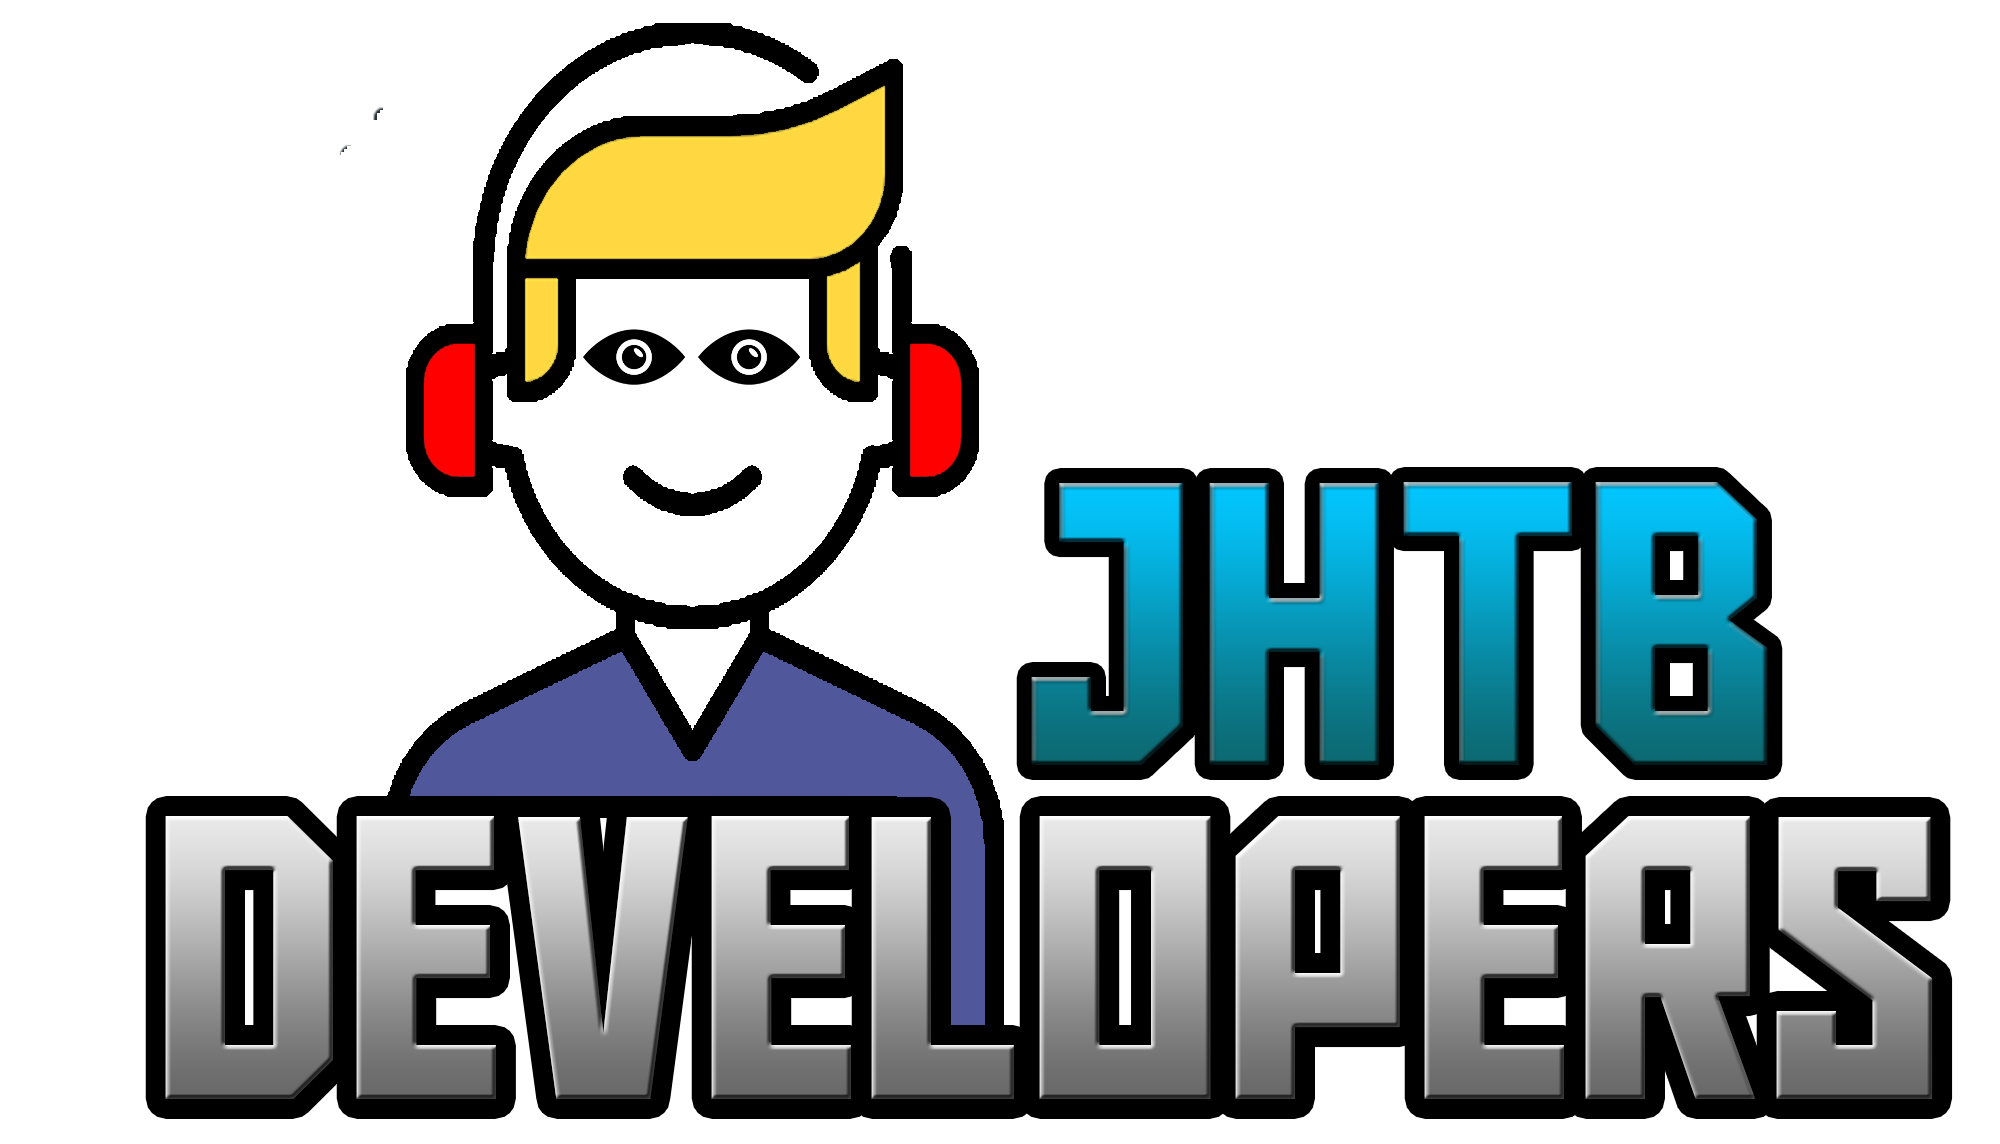 JHTB DEVELOPERS